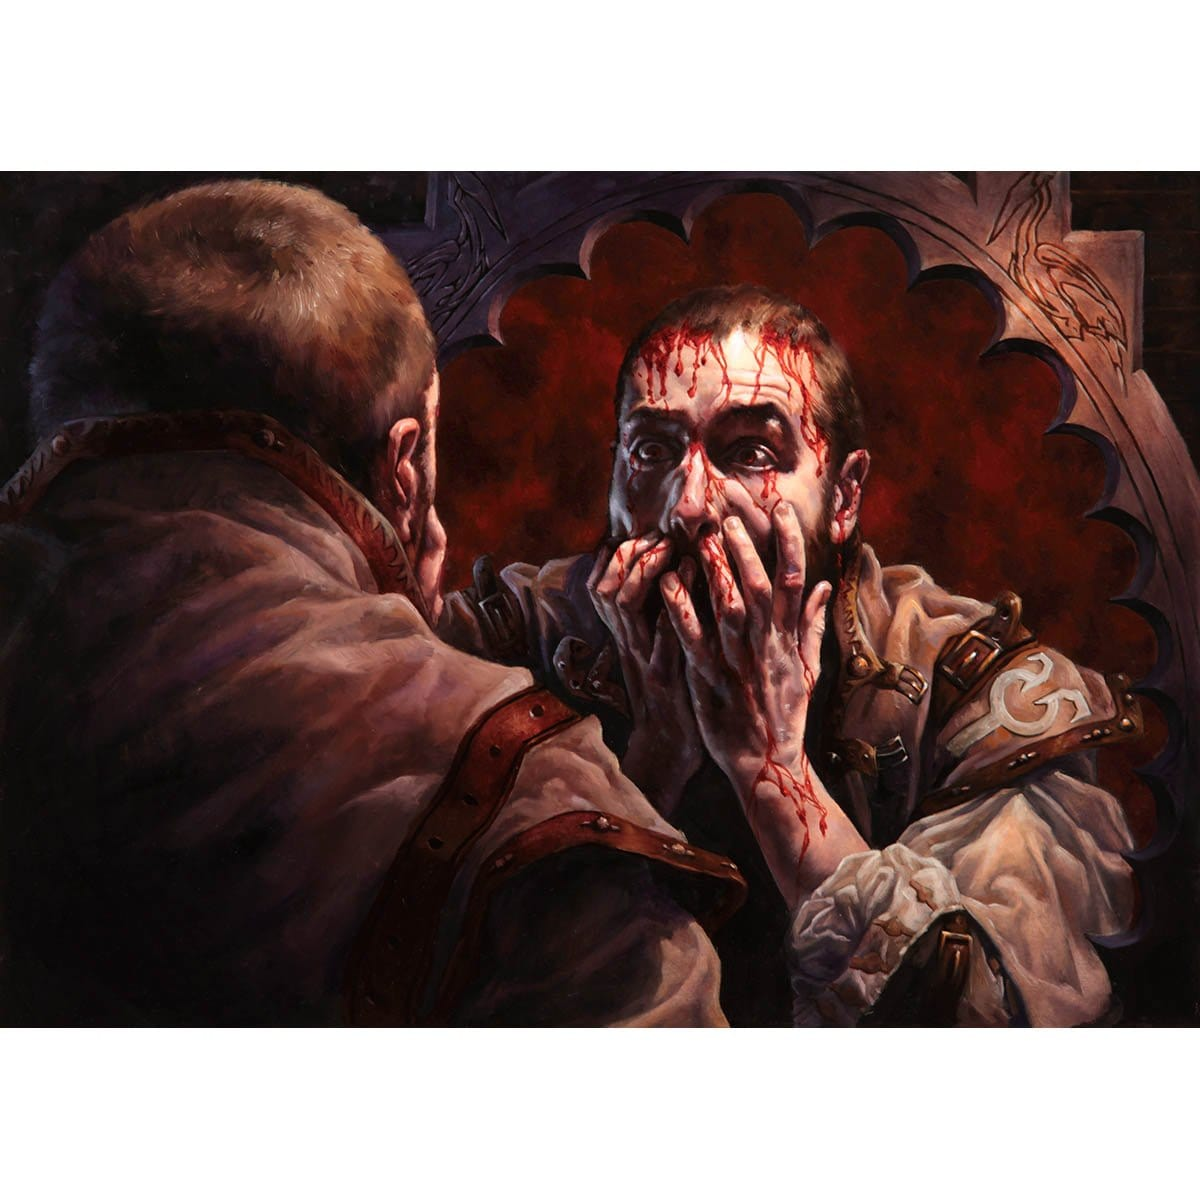 Curse of Bloodletting Print - Print - Original Magic Art - Accessories for Magic the Gathering and other card games